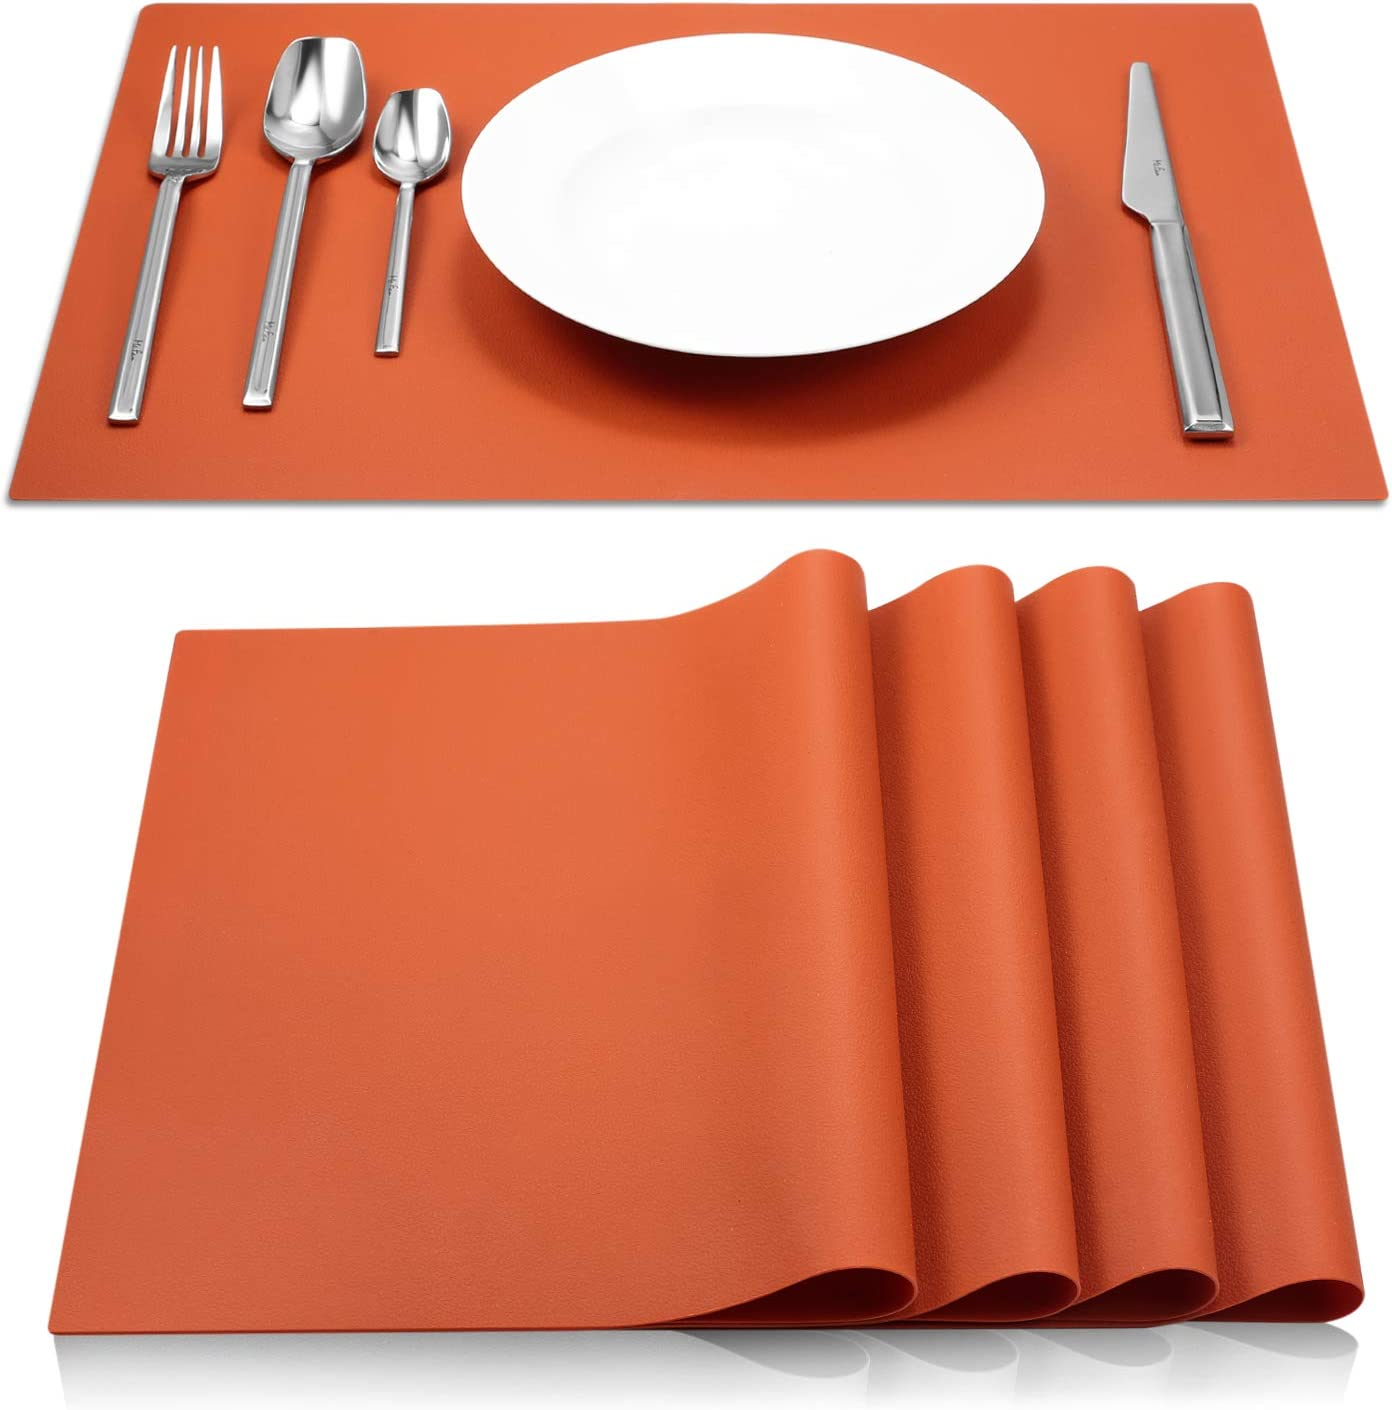 ME.FAN Silicone Placemats [17.7''x12.6''] Heat-Resistant Thicken Non-Slip Tablemats Stain Resistant Anti-Skid Washable Reusable Table Mats Set of 4 (Dark Orange)